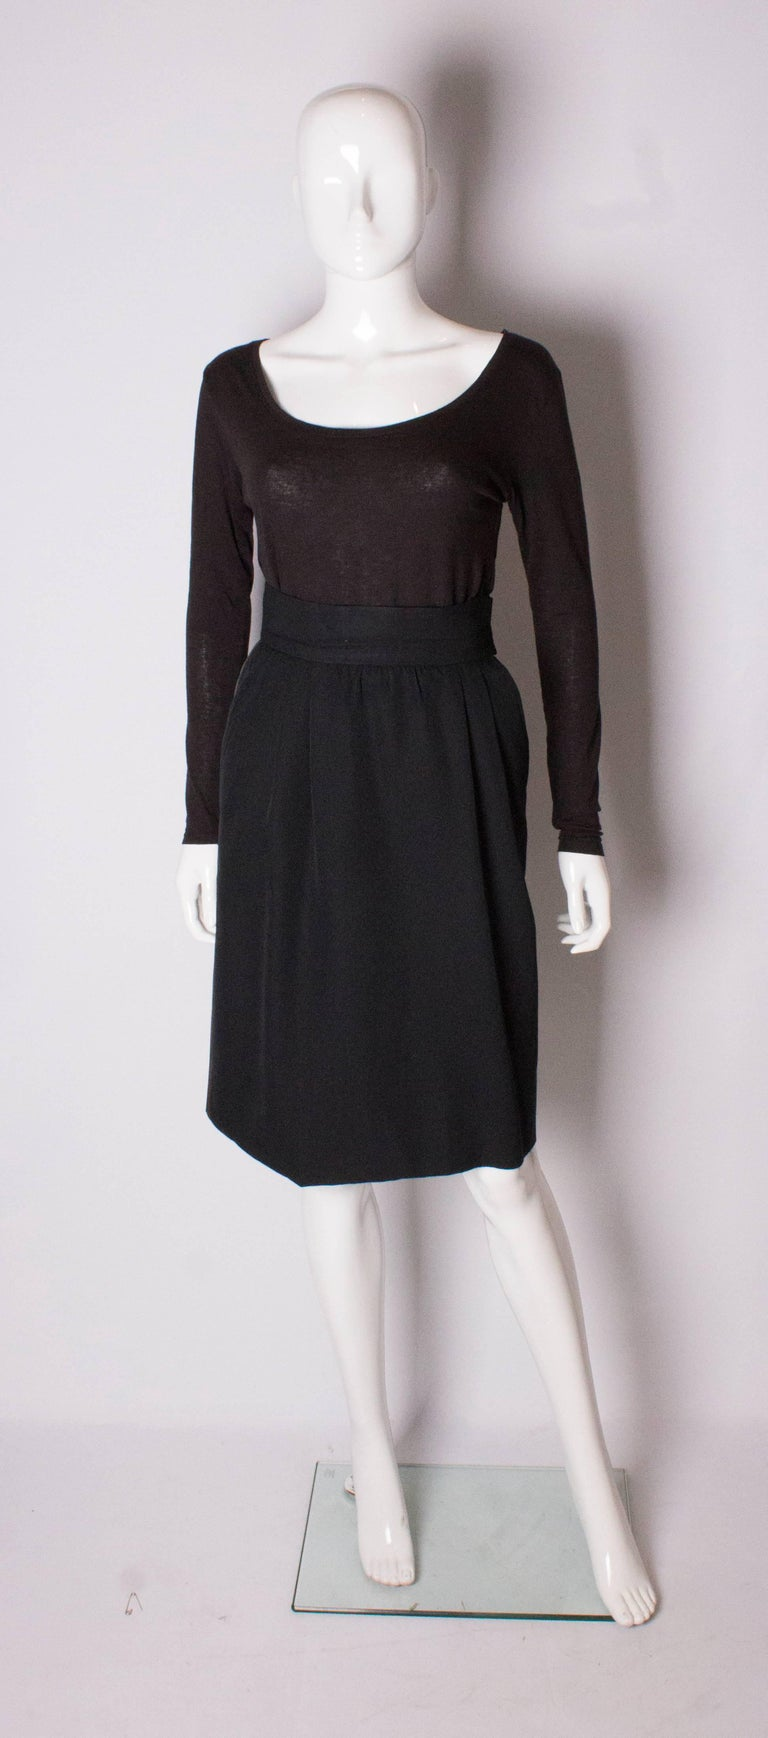 A chic vintage skirt 'Le Smoking' tuxedo  by Yves Saint Laurent Rive Gauche. The skirt is wool and fully lined, with sloping pockets and a zip on the left hand side. It has gathering on the front and ribbon detail on the left hand side.